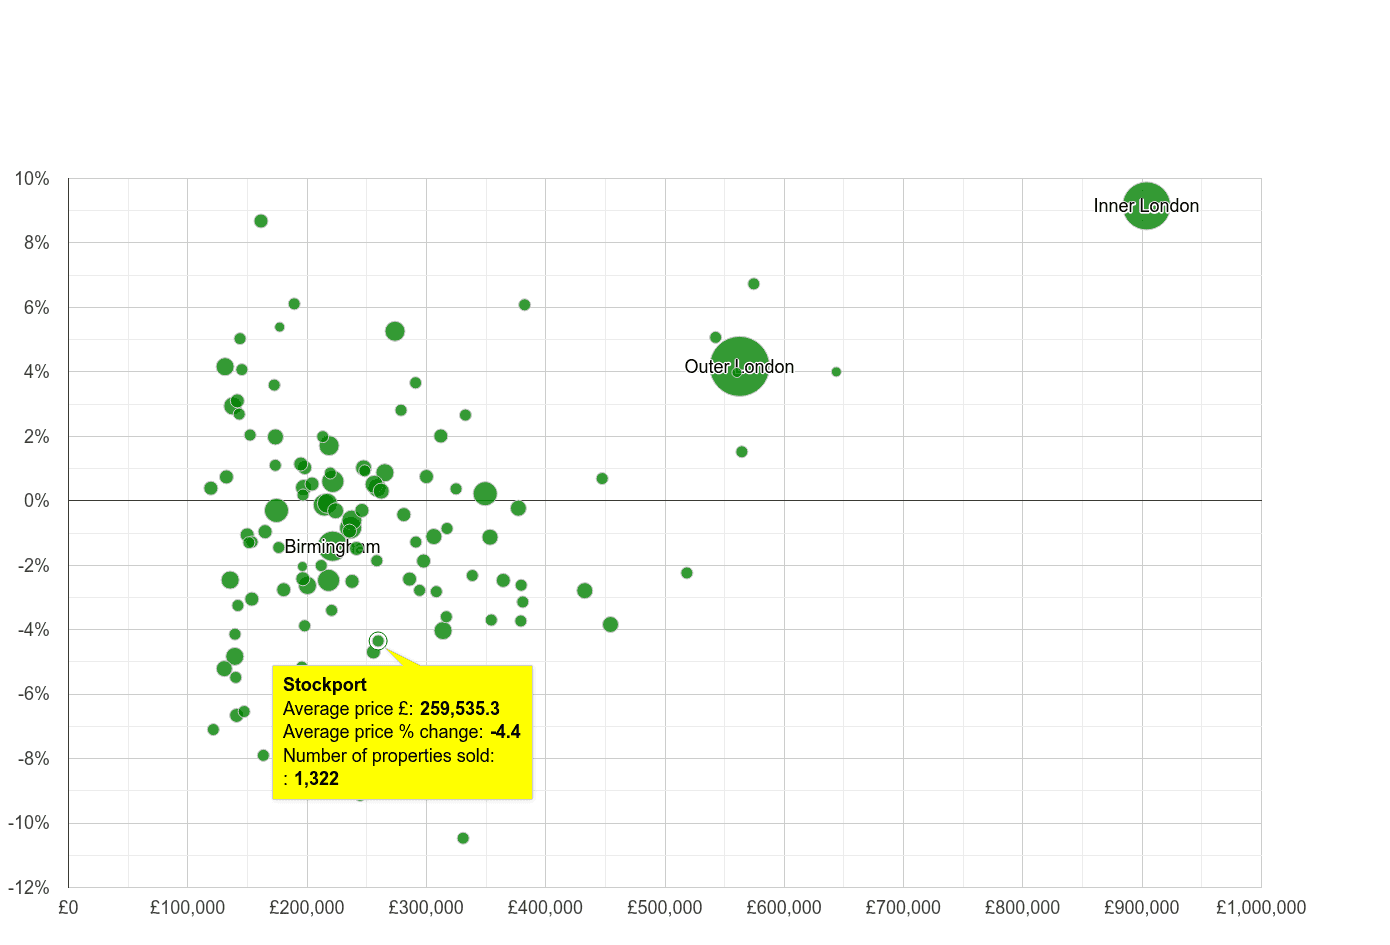 Stockport house prices compared to other cities